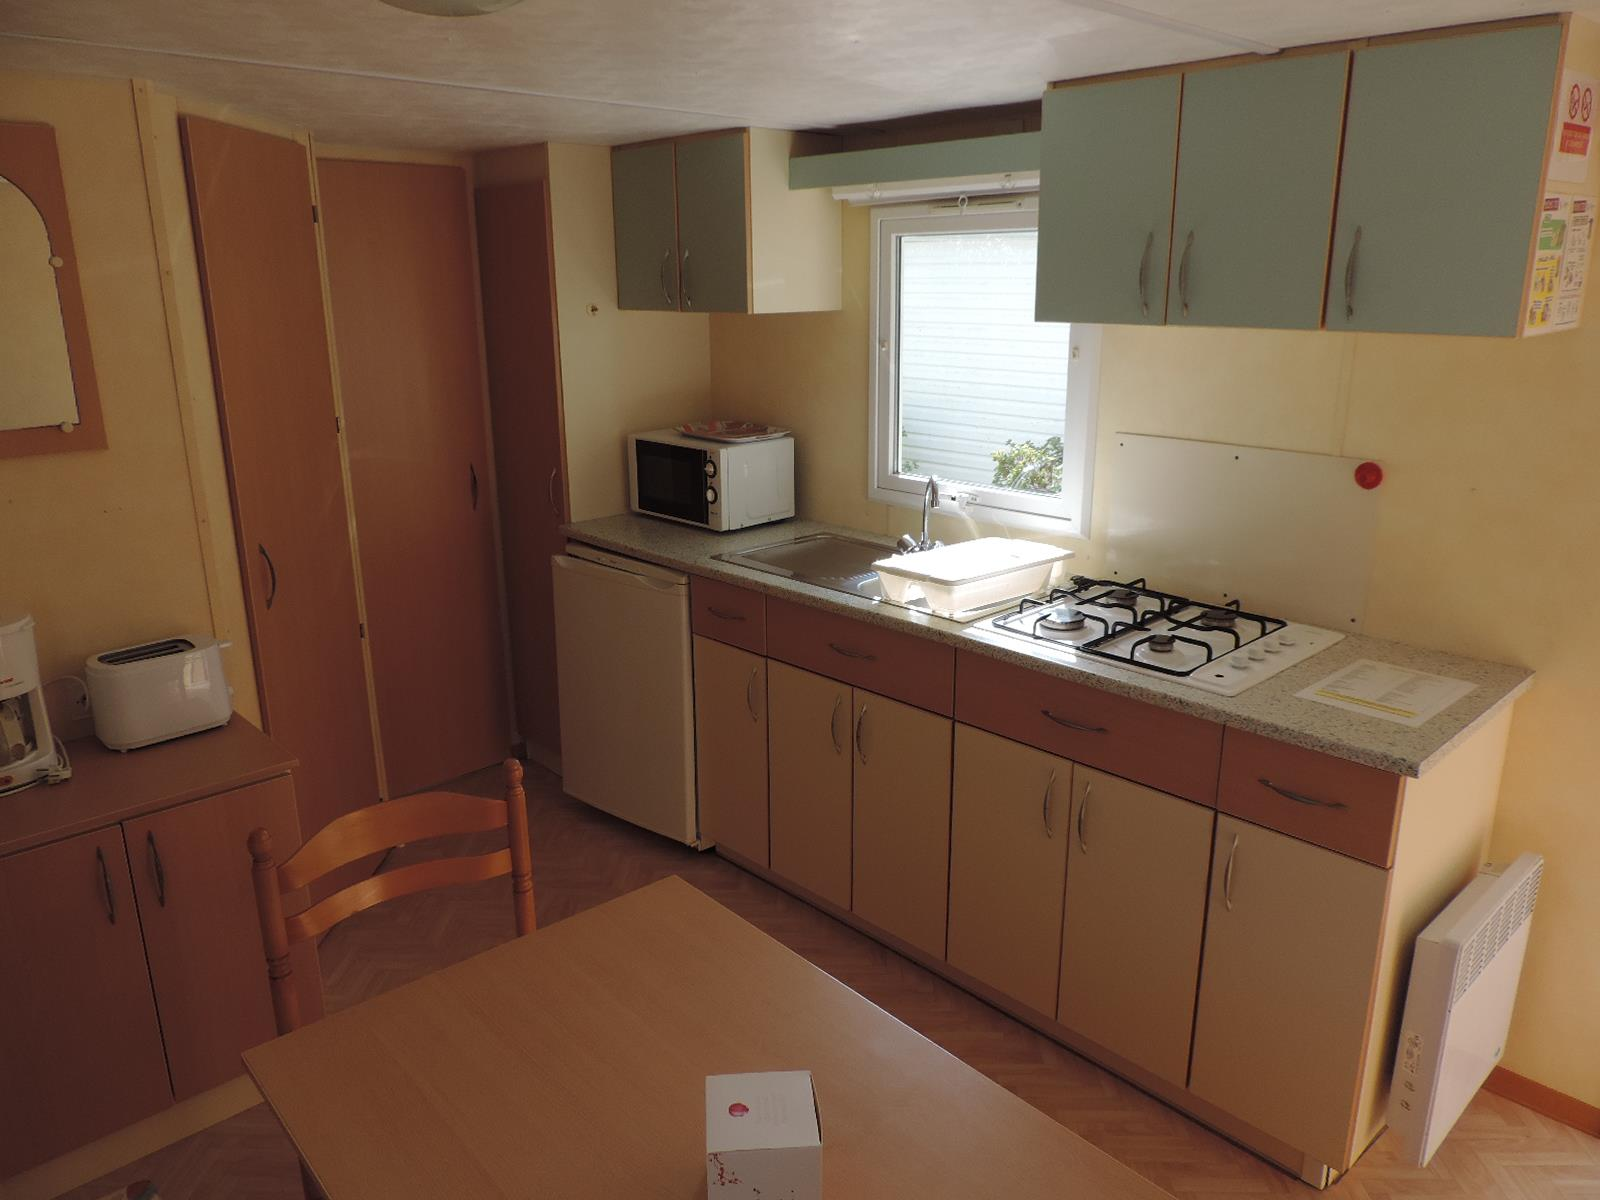 Mobilhome 24M²-47-(2 Chambres)-Annee 2004-